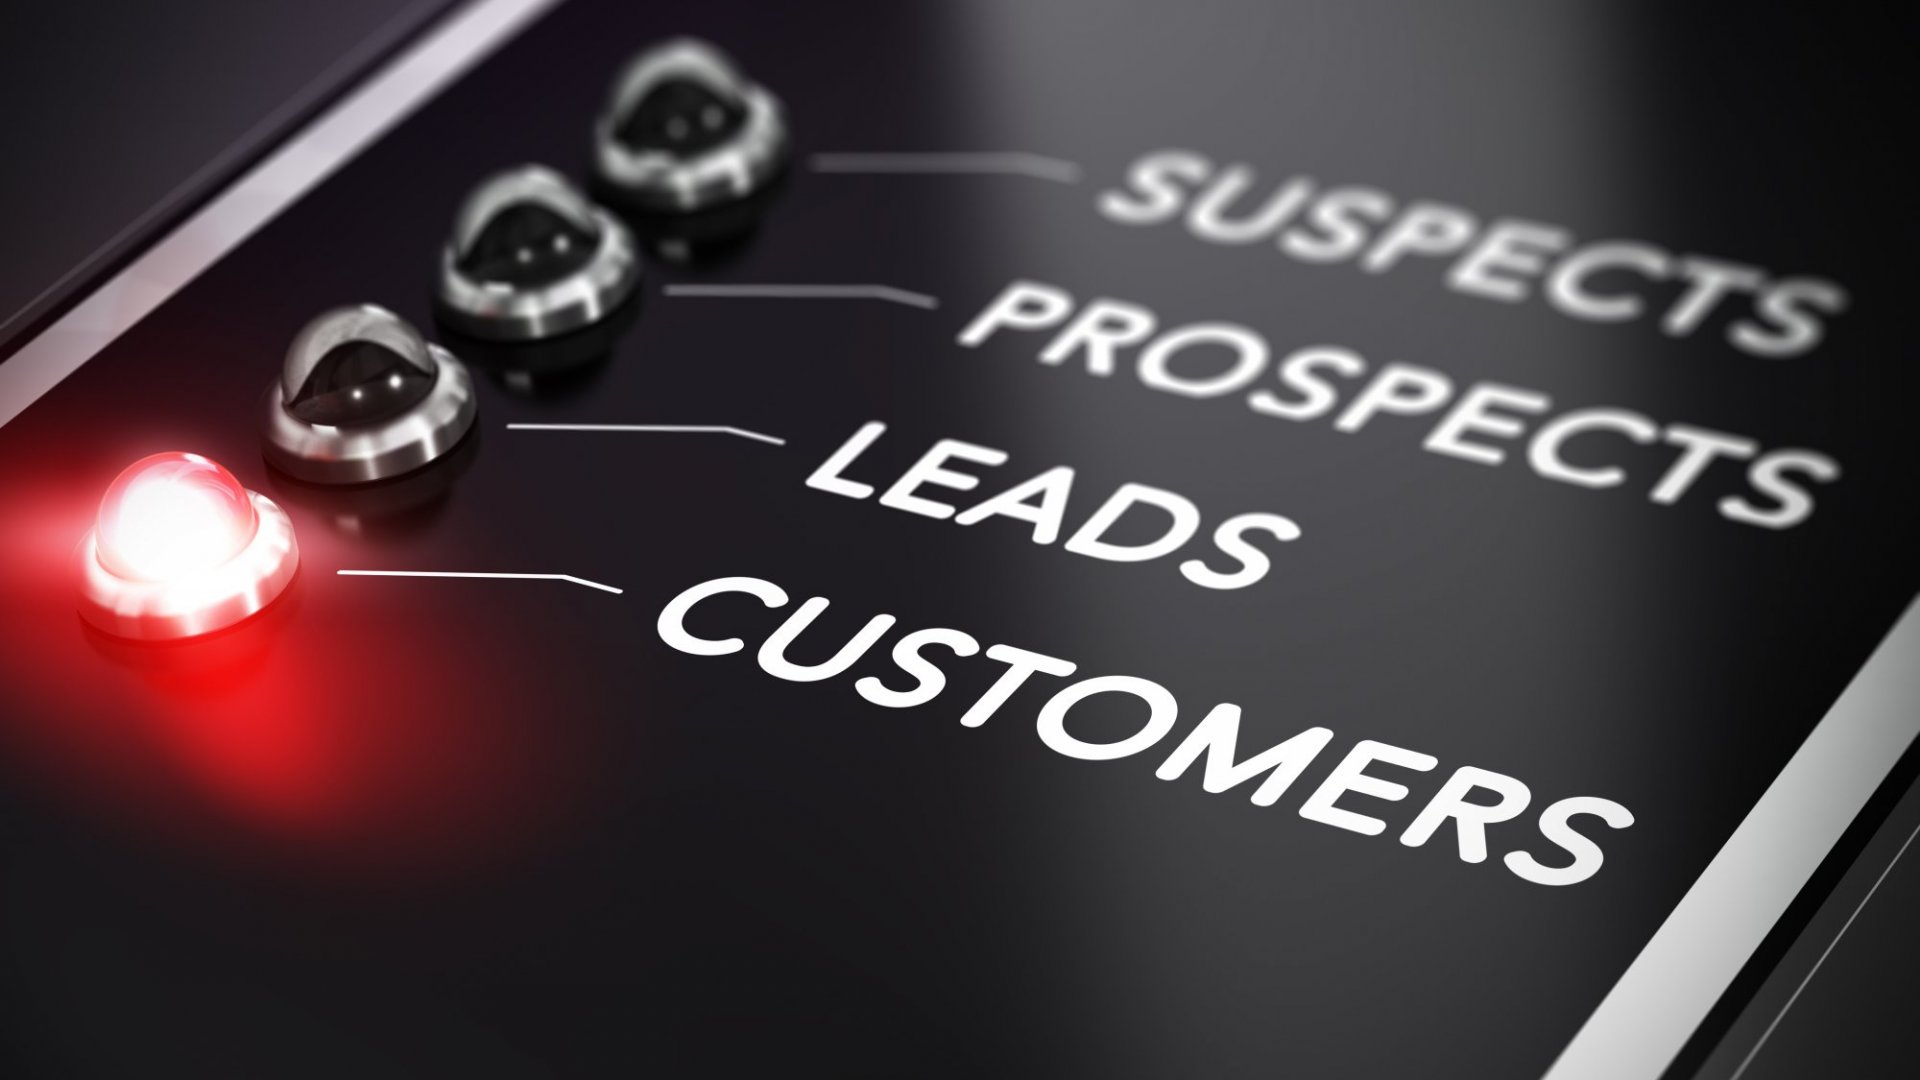 How to Find 100 New Sales Prospects in the Next 24 Hours